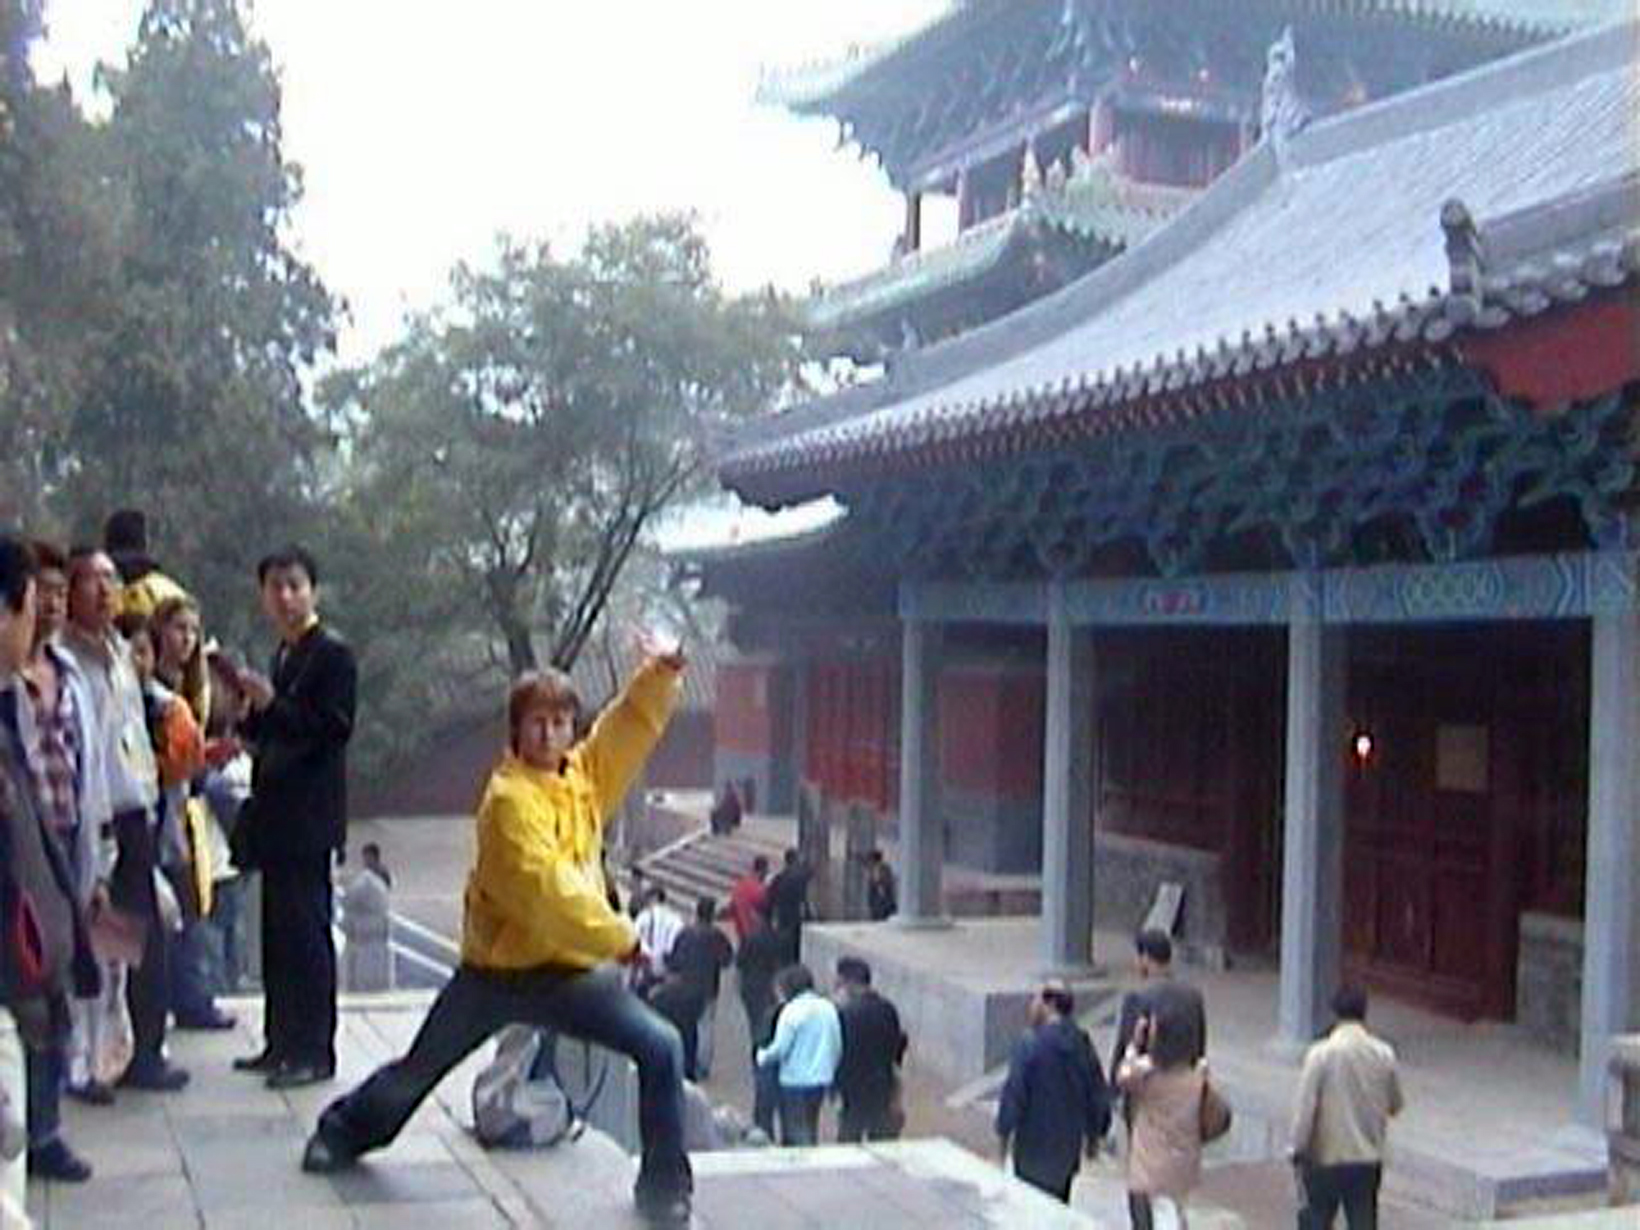 niel willcott at shaolin temple choy li fut kung fu.jpg